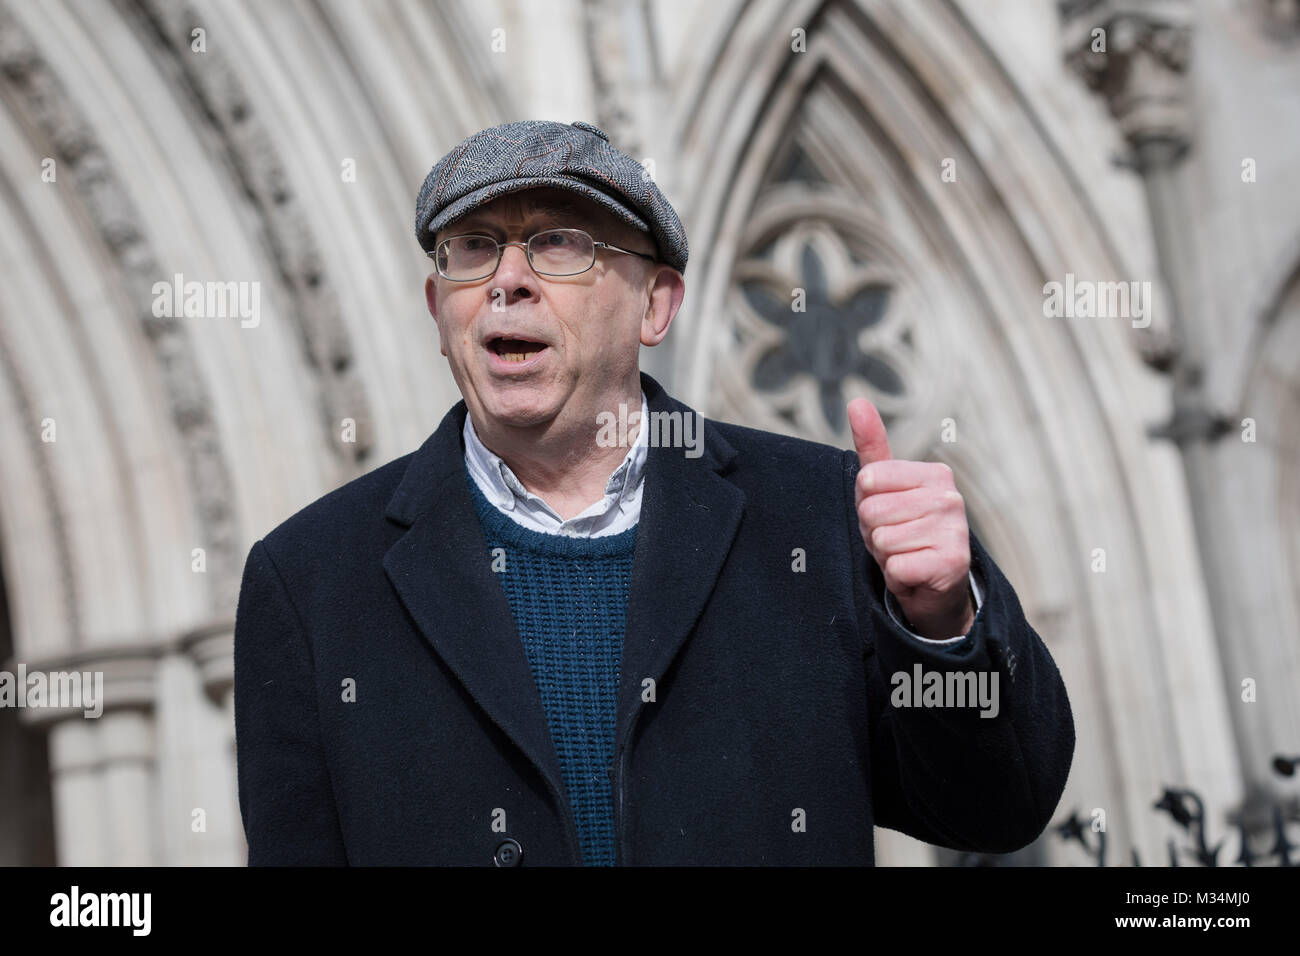 London, UK. 8th February 2018. Class War founder and veteran anarchist, Ian Bone speaking outside the High Court - Stock Image